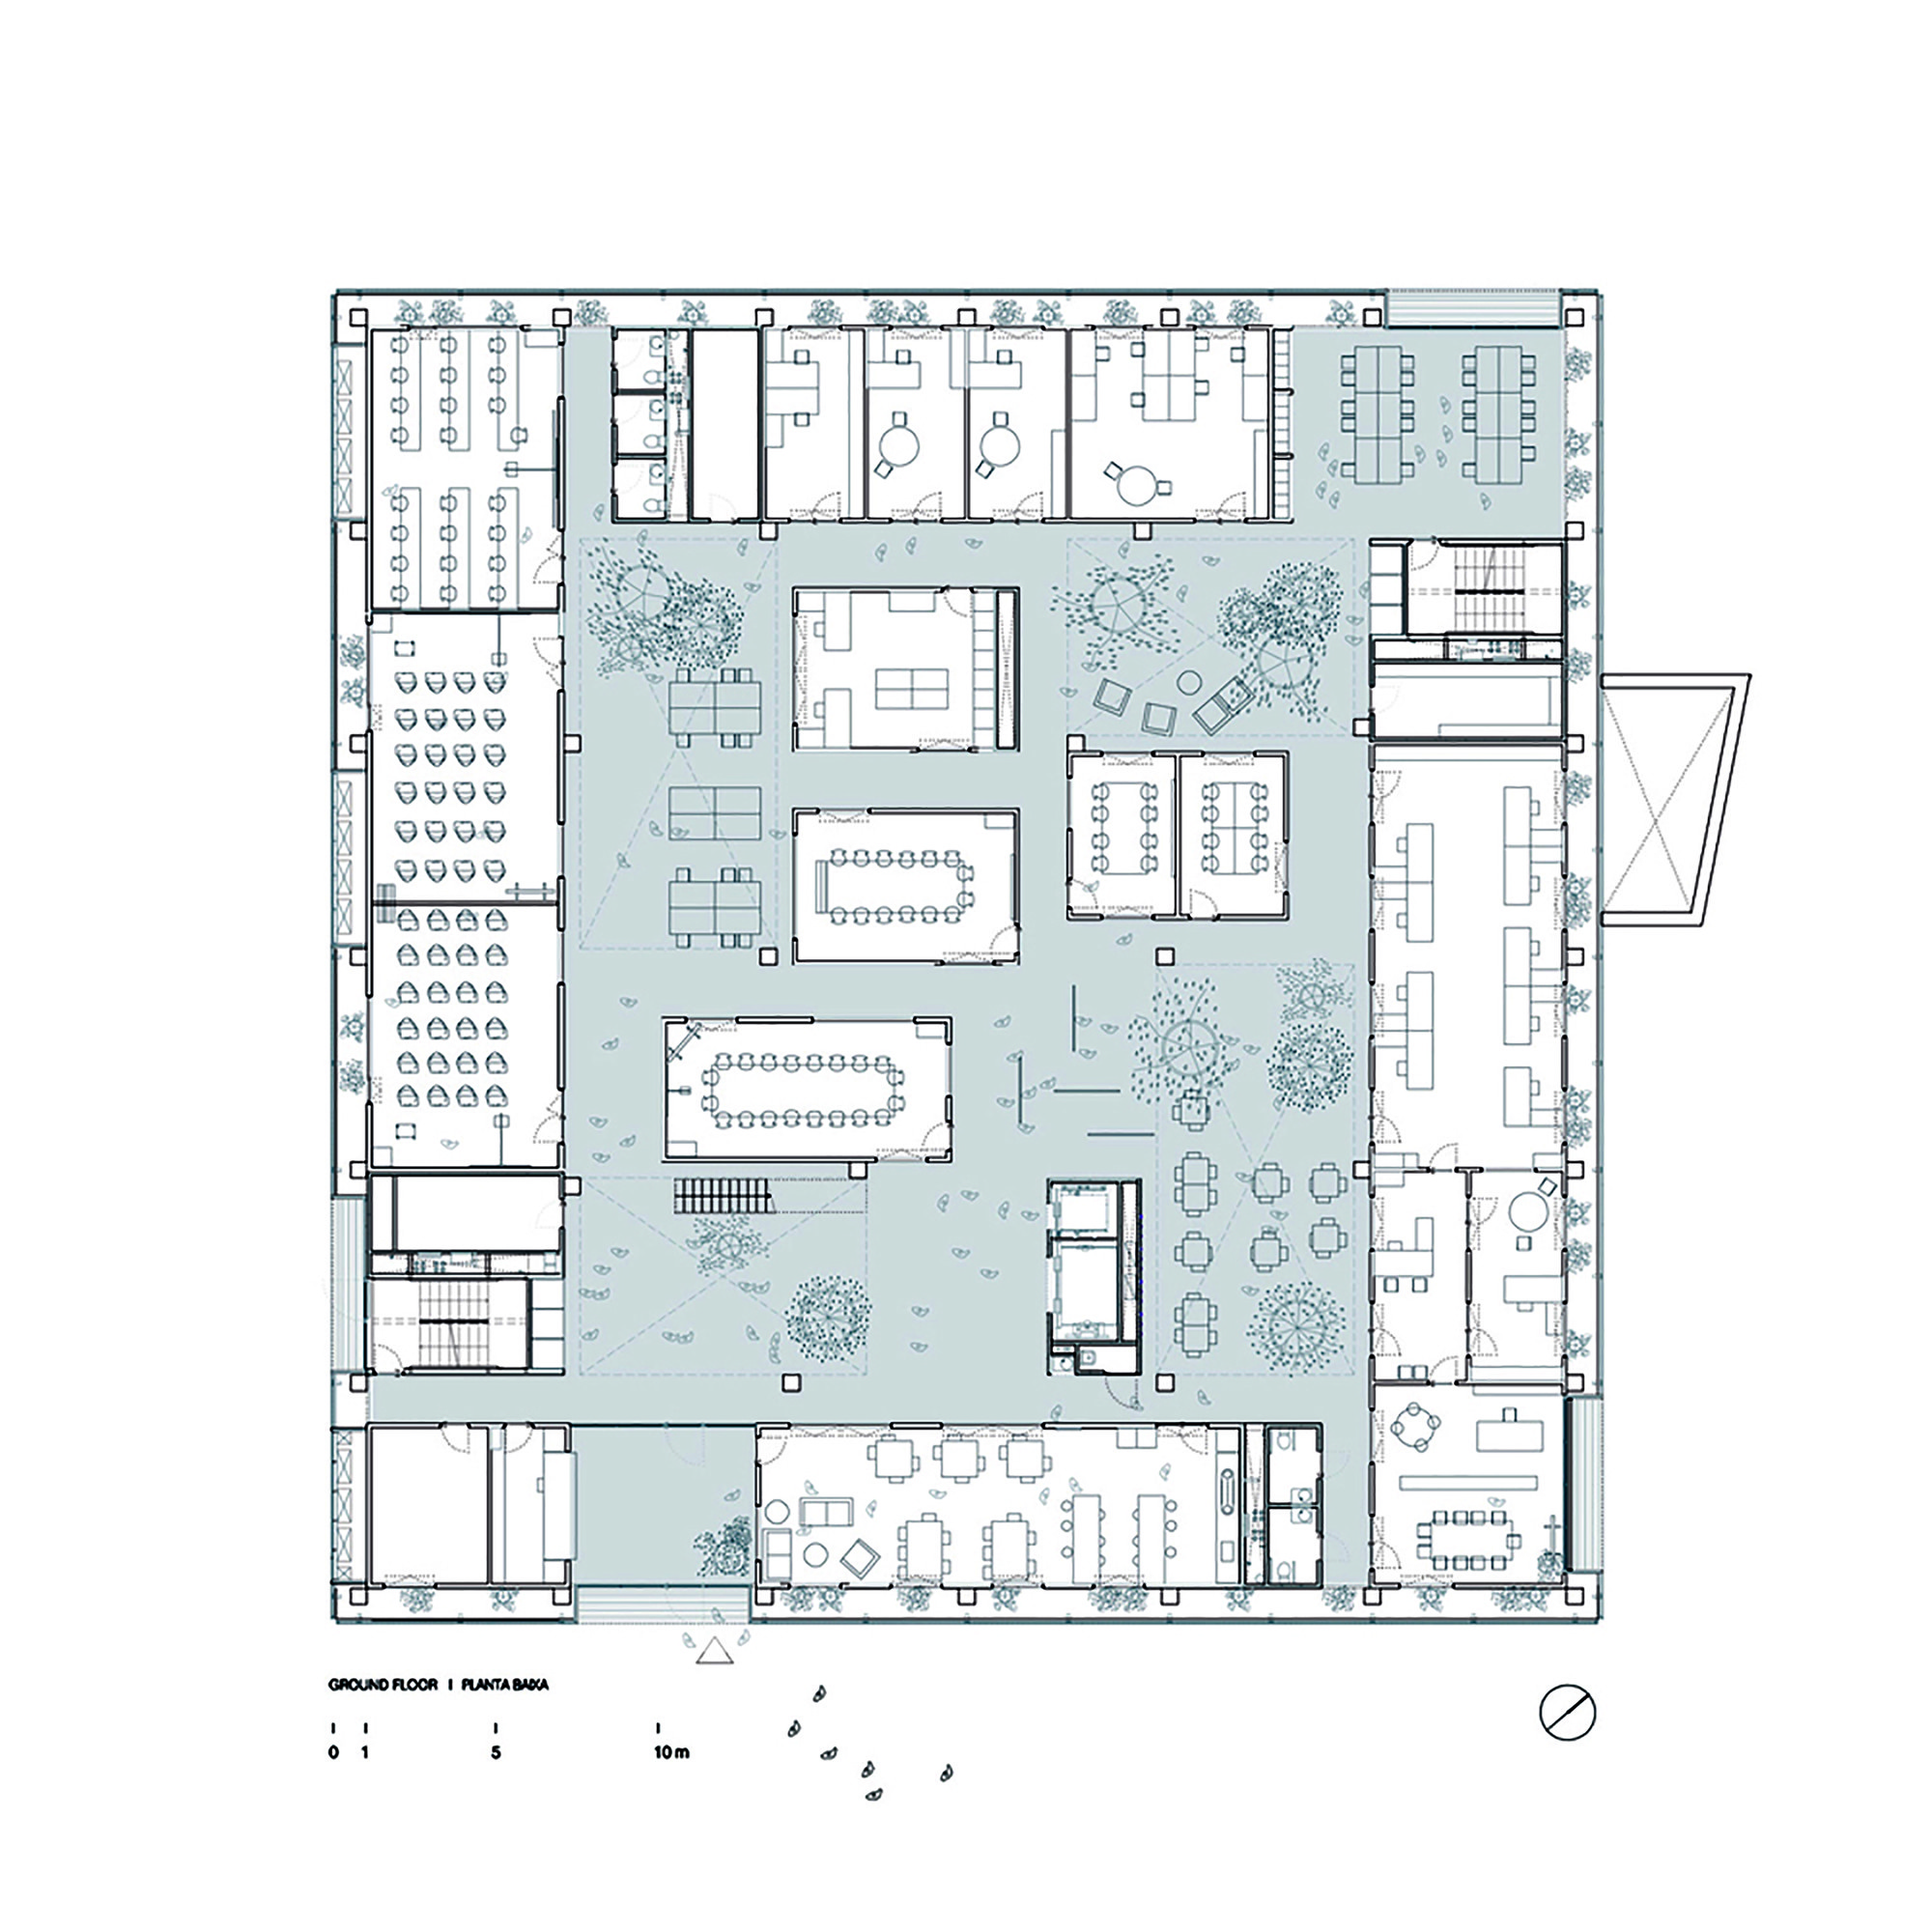 Cancer Center Floor Plan Gallery Of Research Center Icta Icp 183 Uab H Arquitectes